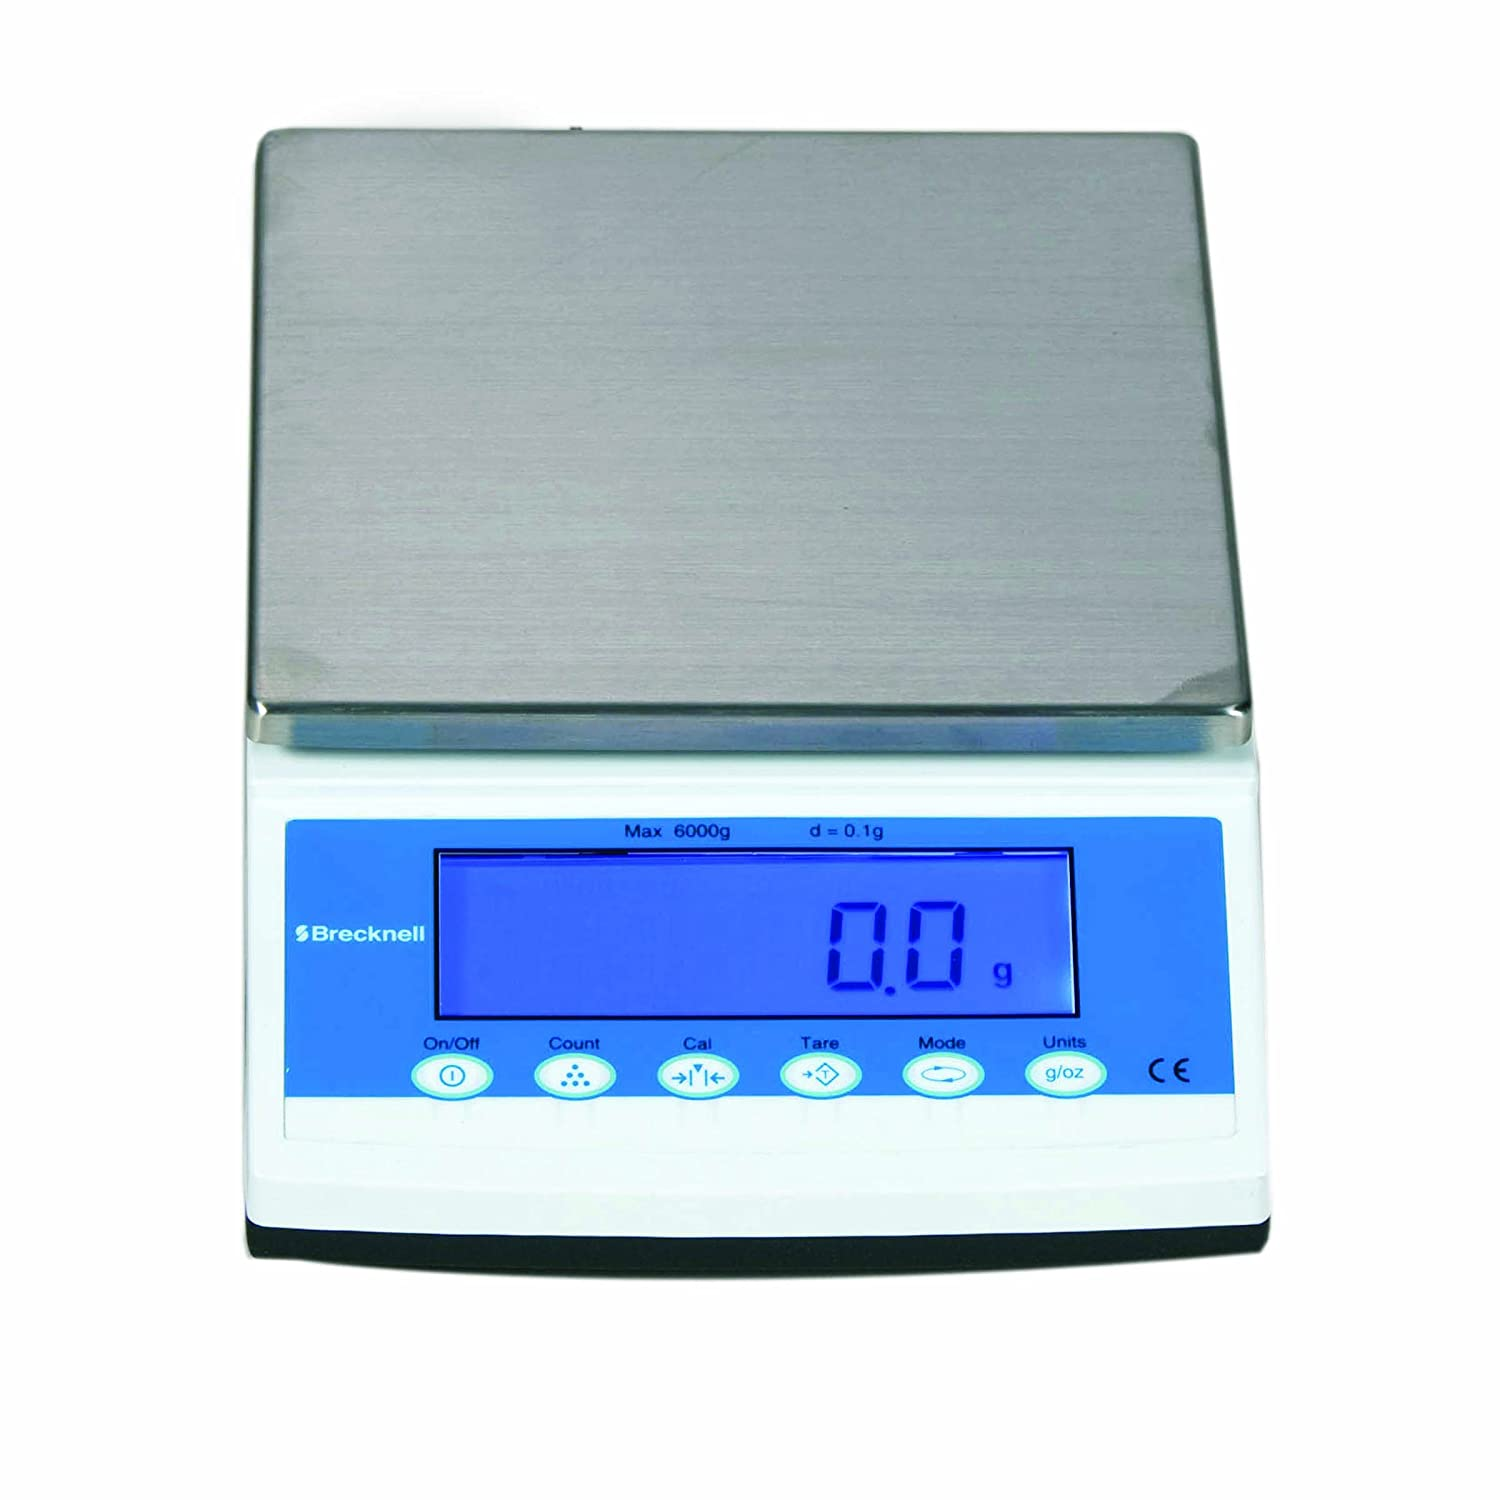 Image of Brecknell MBS-3000 Precision Lab Balances, 3000 g Capacity, Large LCD, Steel Top Plate, Plastic Digital Scales